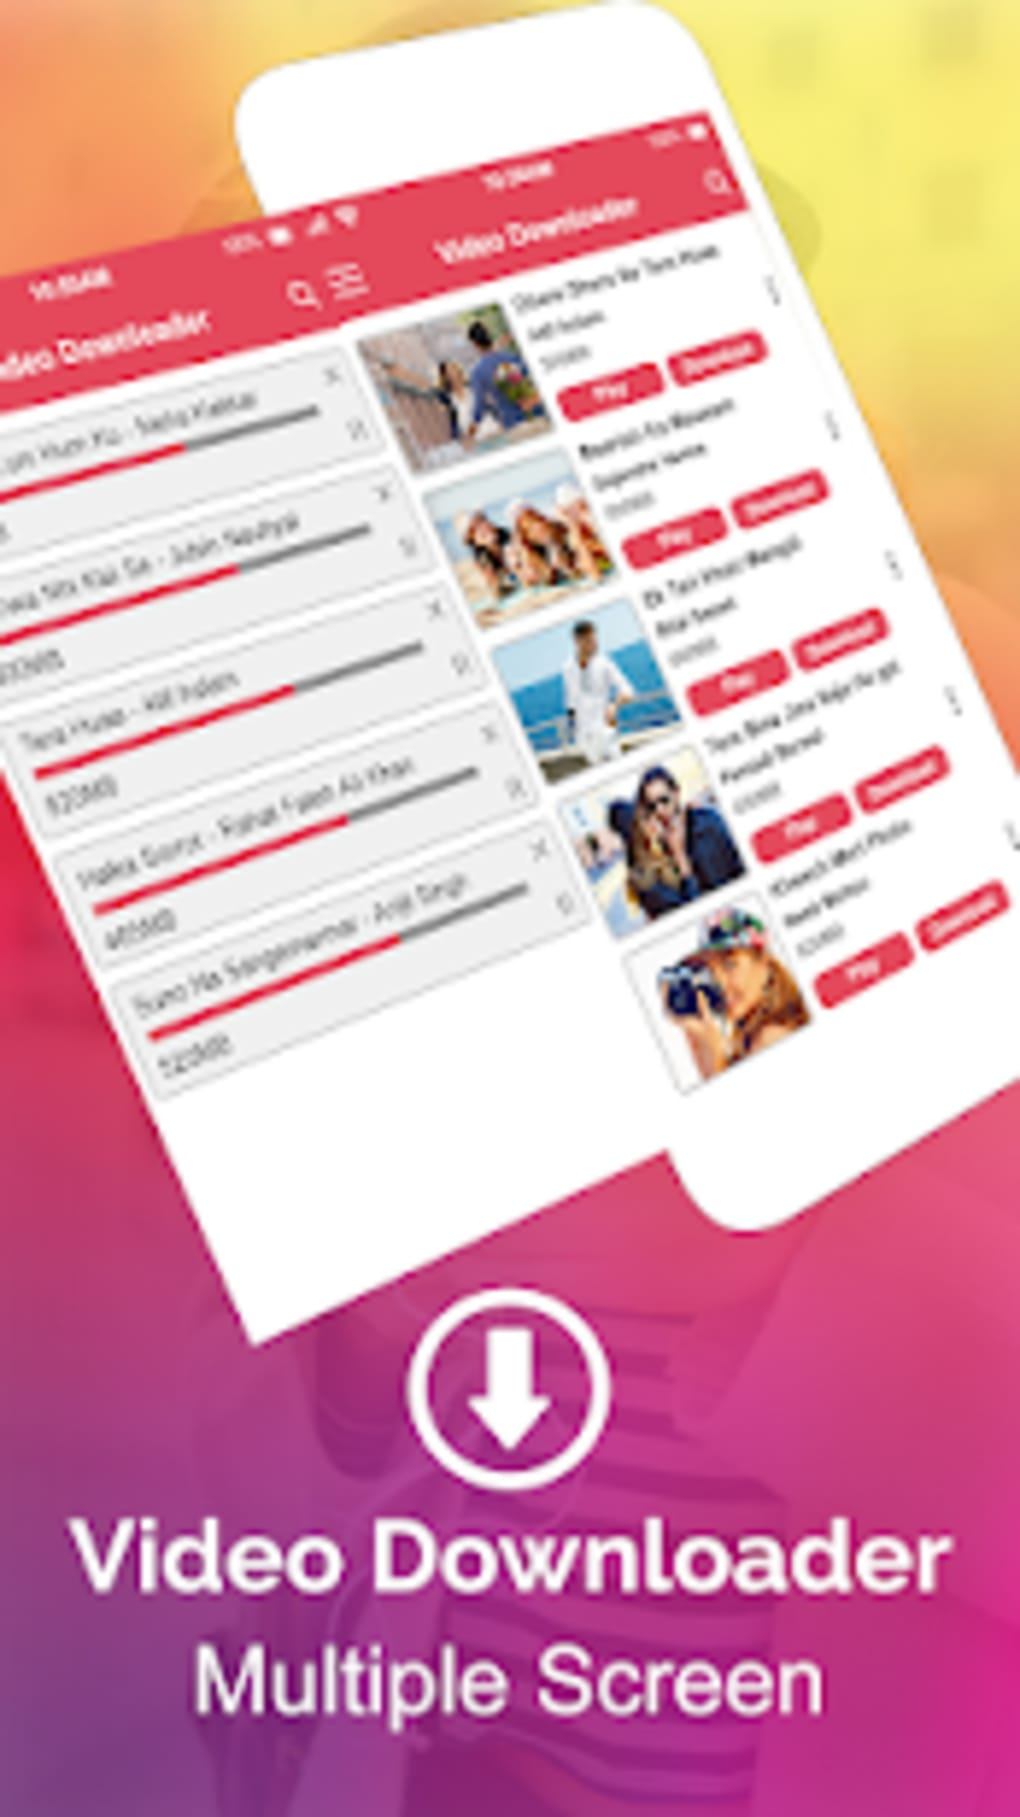 HD Video Downloader : Video fast Download for Android - Download